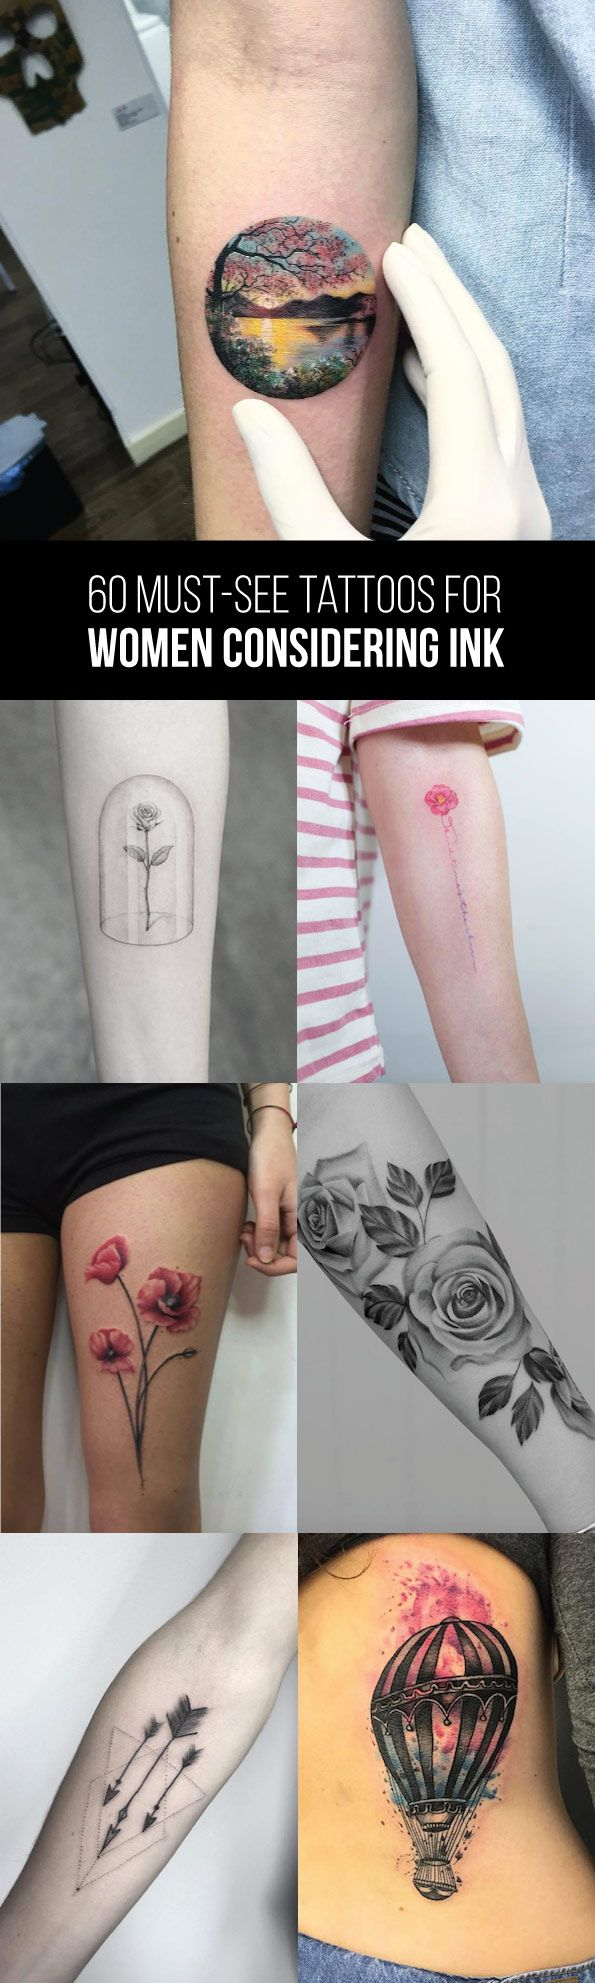 60 Must-See Tattoos for Women Considering Ink